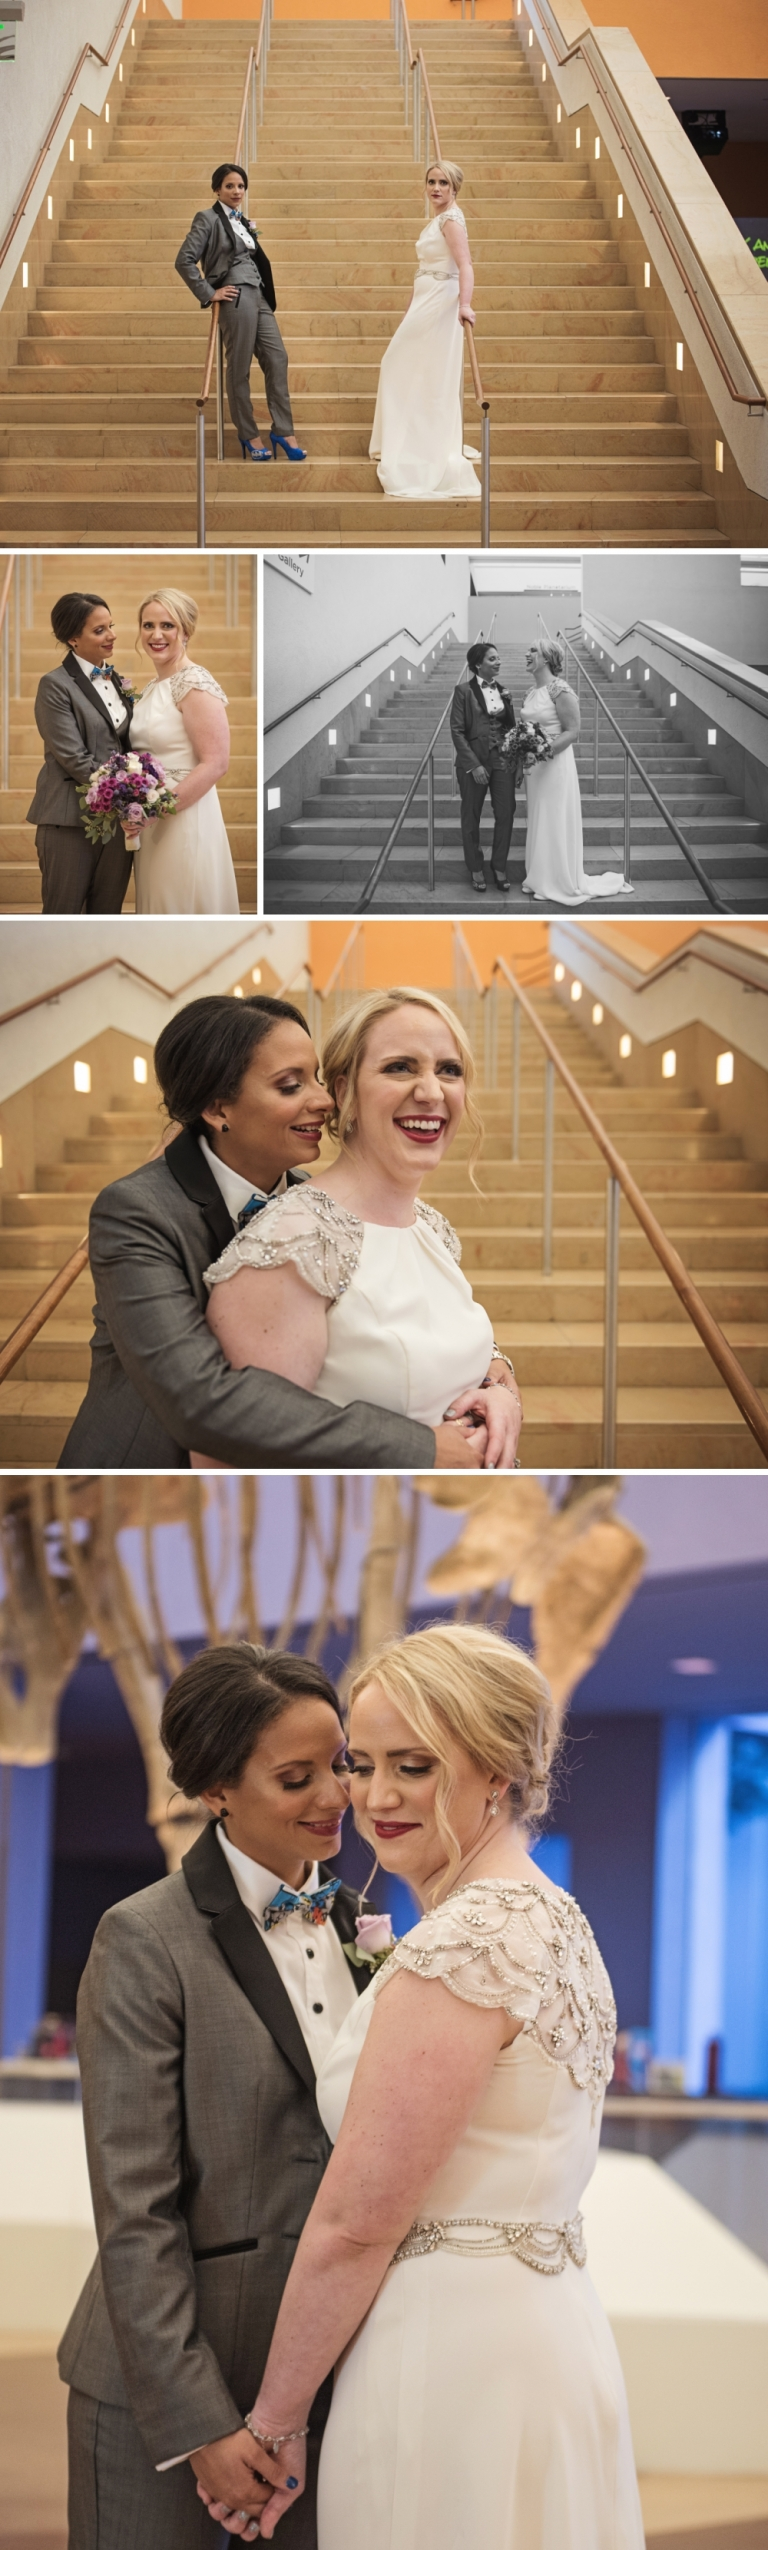 Gorgeous Same Sex Wedding at Fort Worth Museum of Science and History